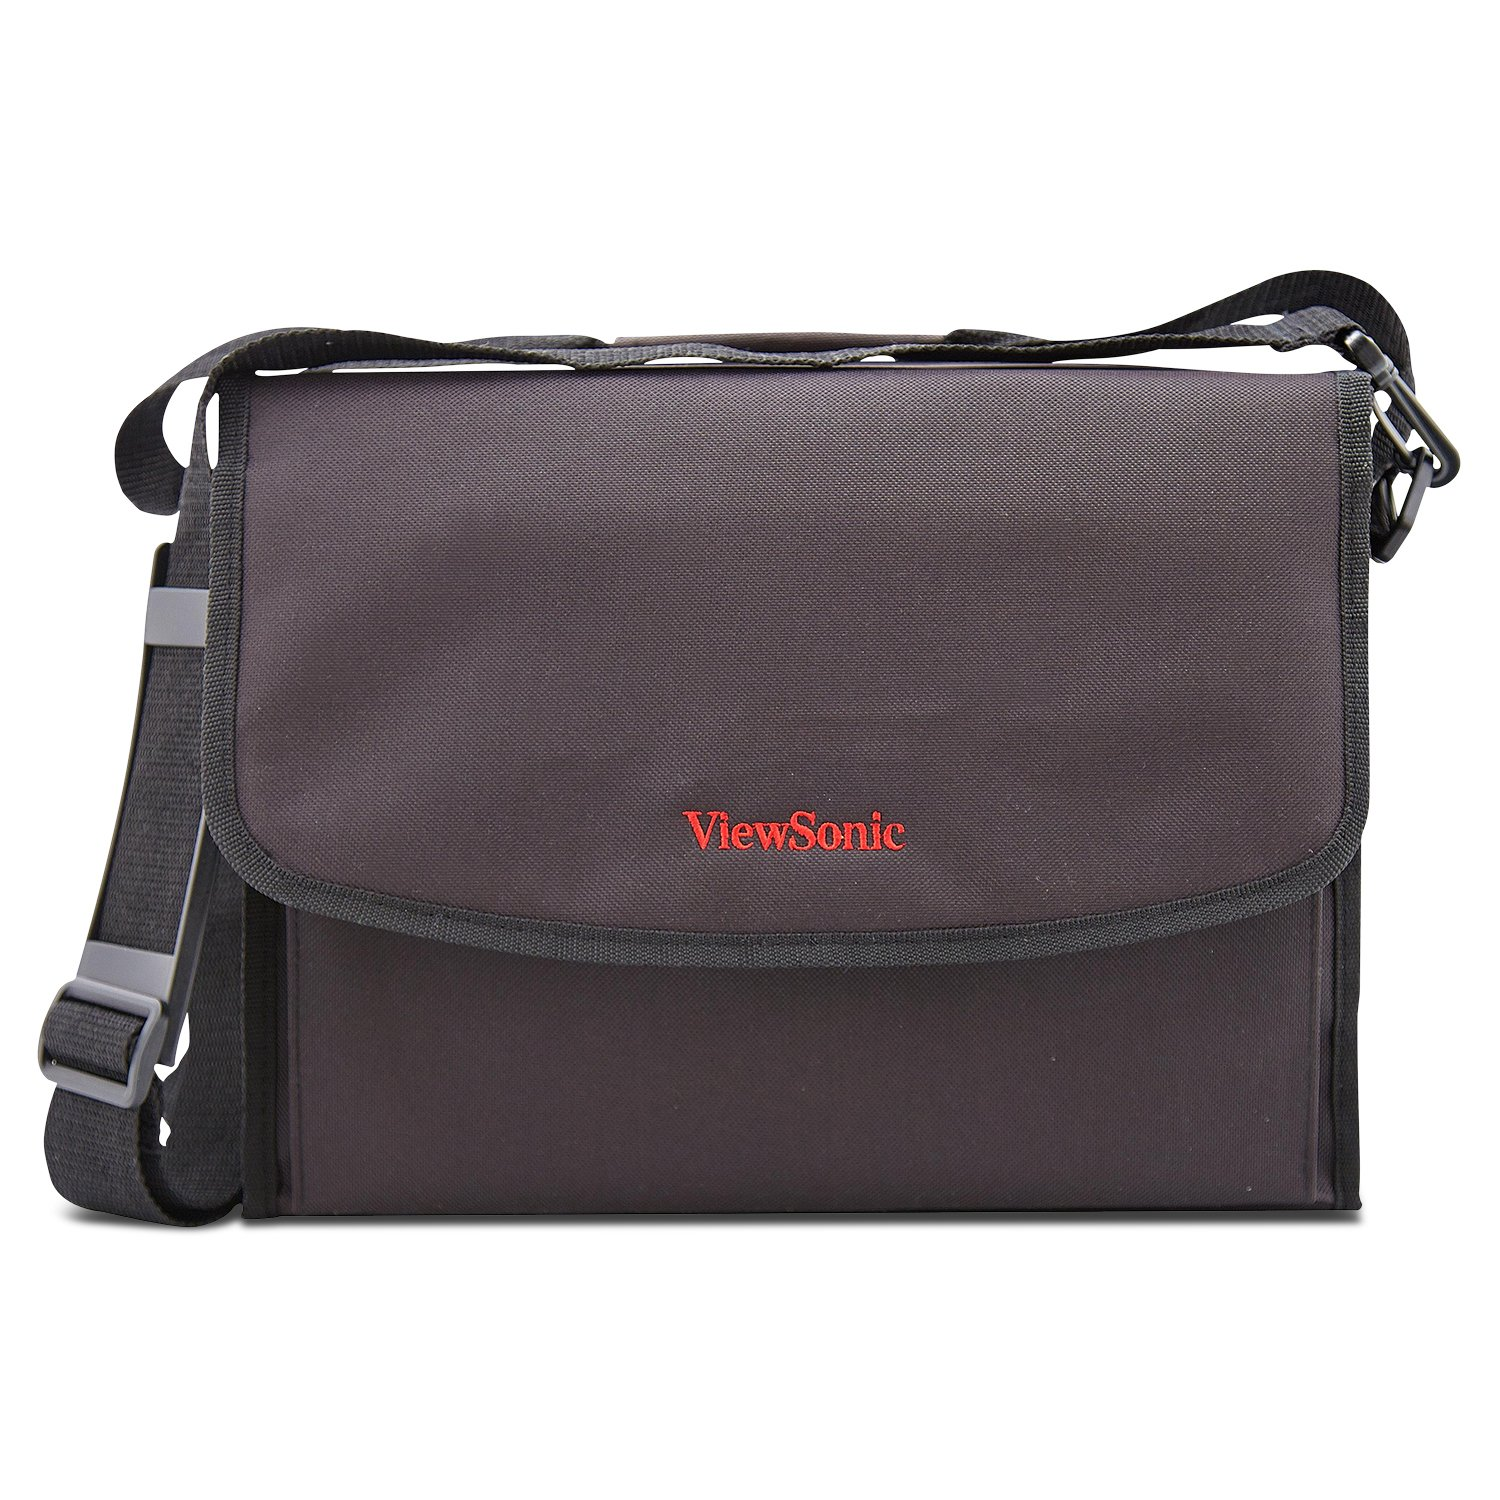 ViewSonic PJ-CASE-008 Projector Carrying Case for LightStream Projectors by ViewSonic